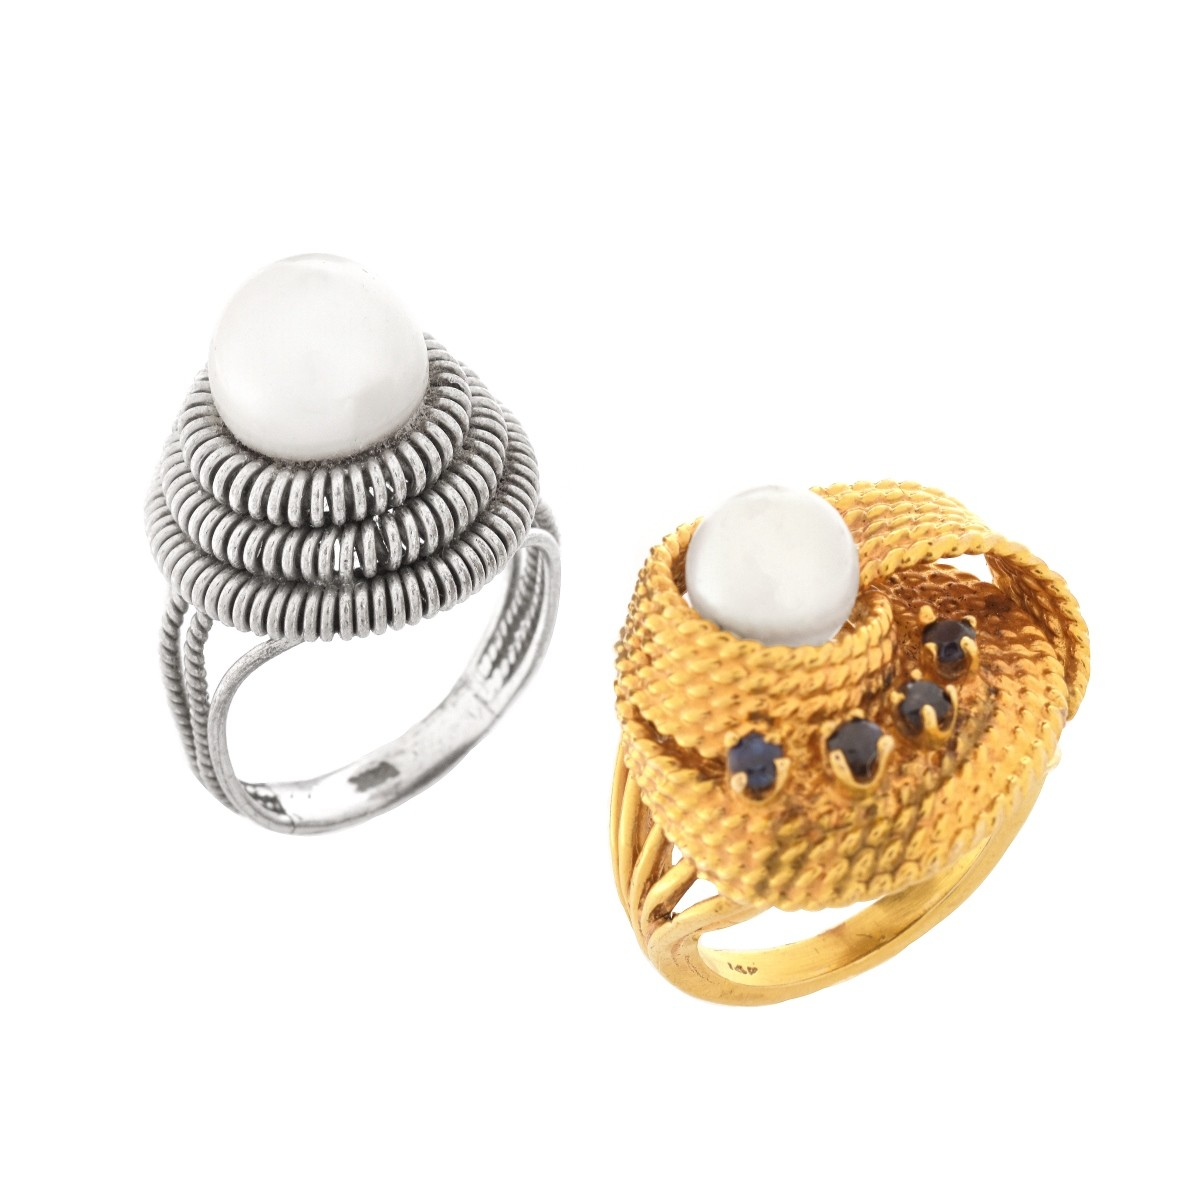 Two Vintage Pearl Rings